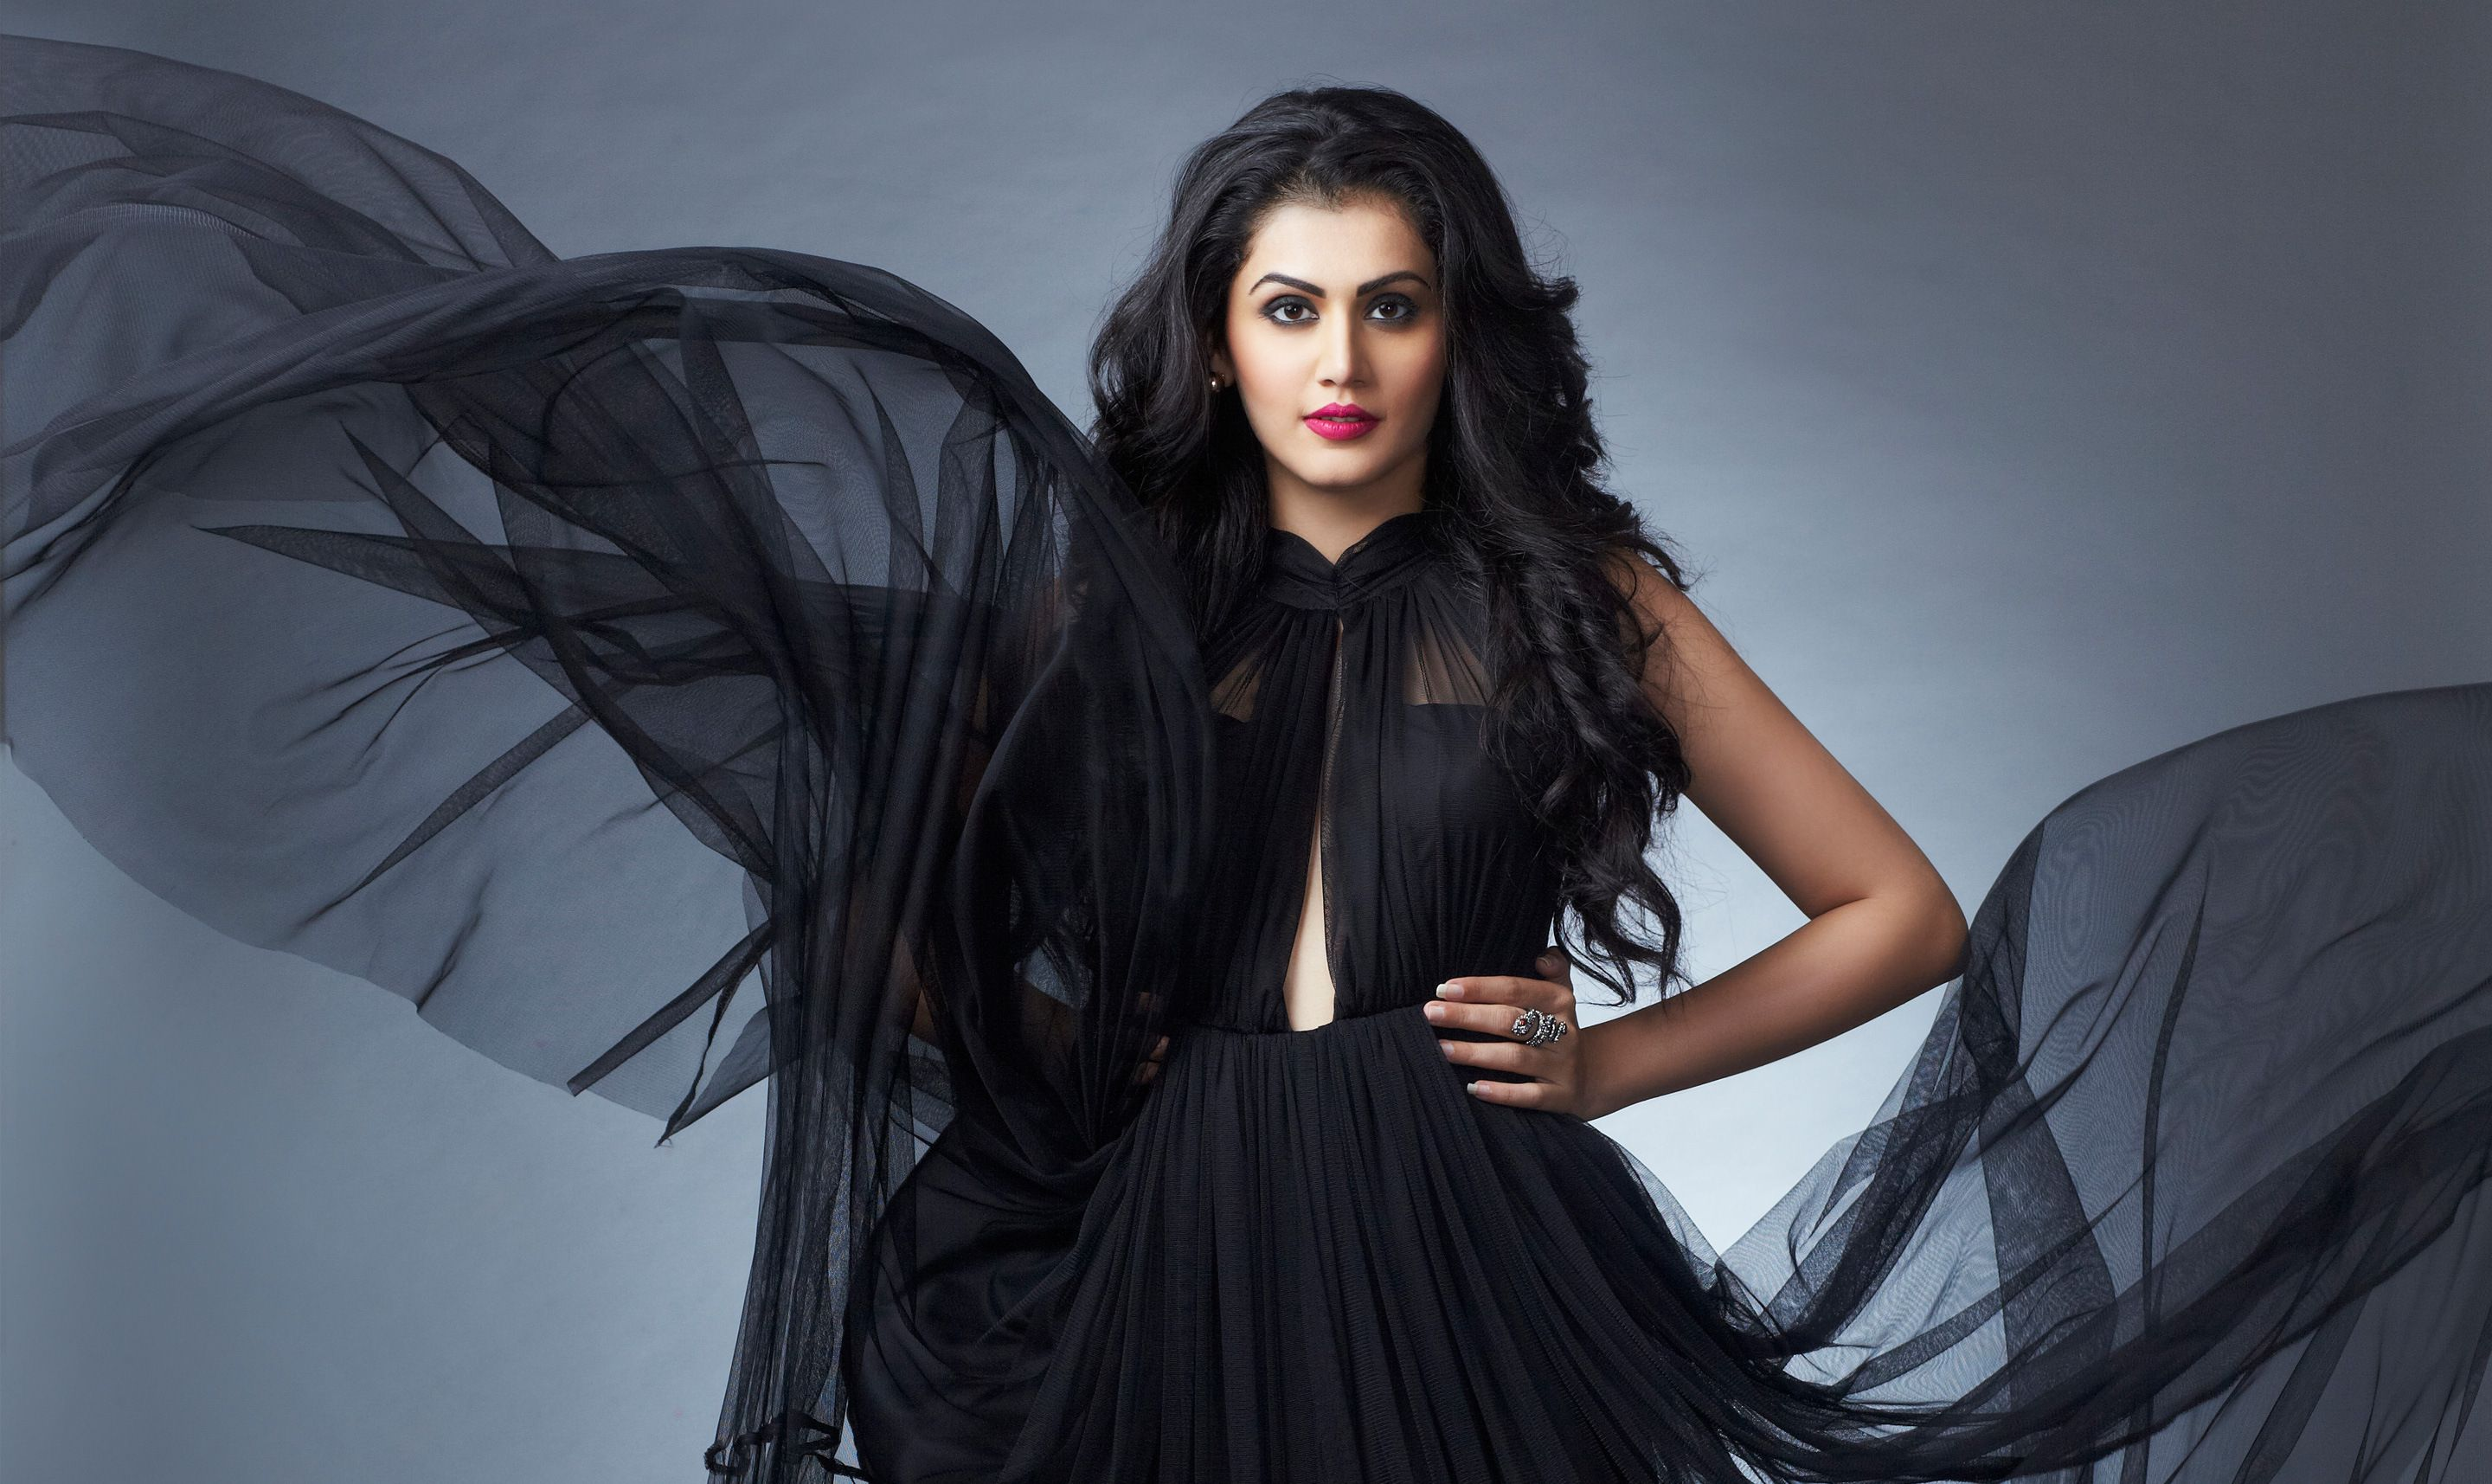 You want to meet with tapsee pannu give her smile tapseepannu you want to meet with tapsee pannu give her smile tapseepannu bollywoodoops m4hsunfo